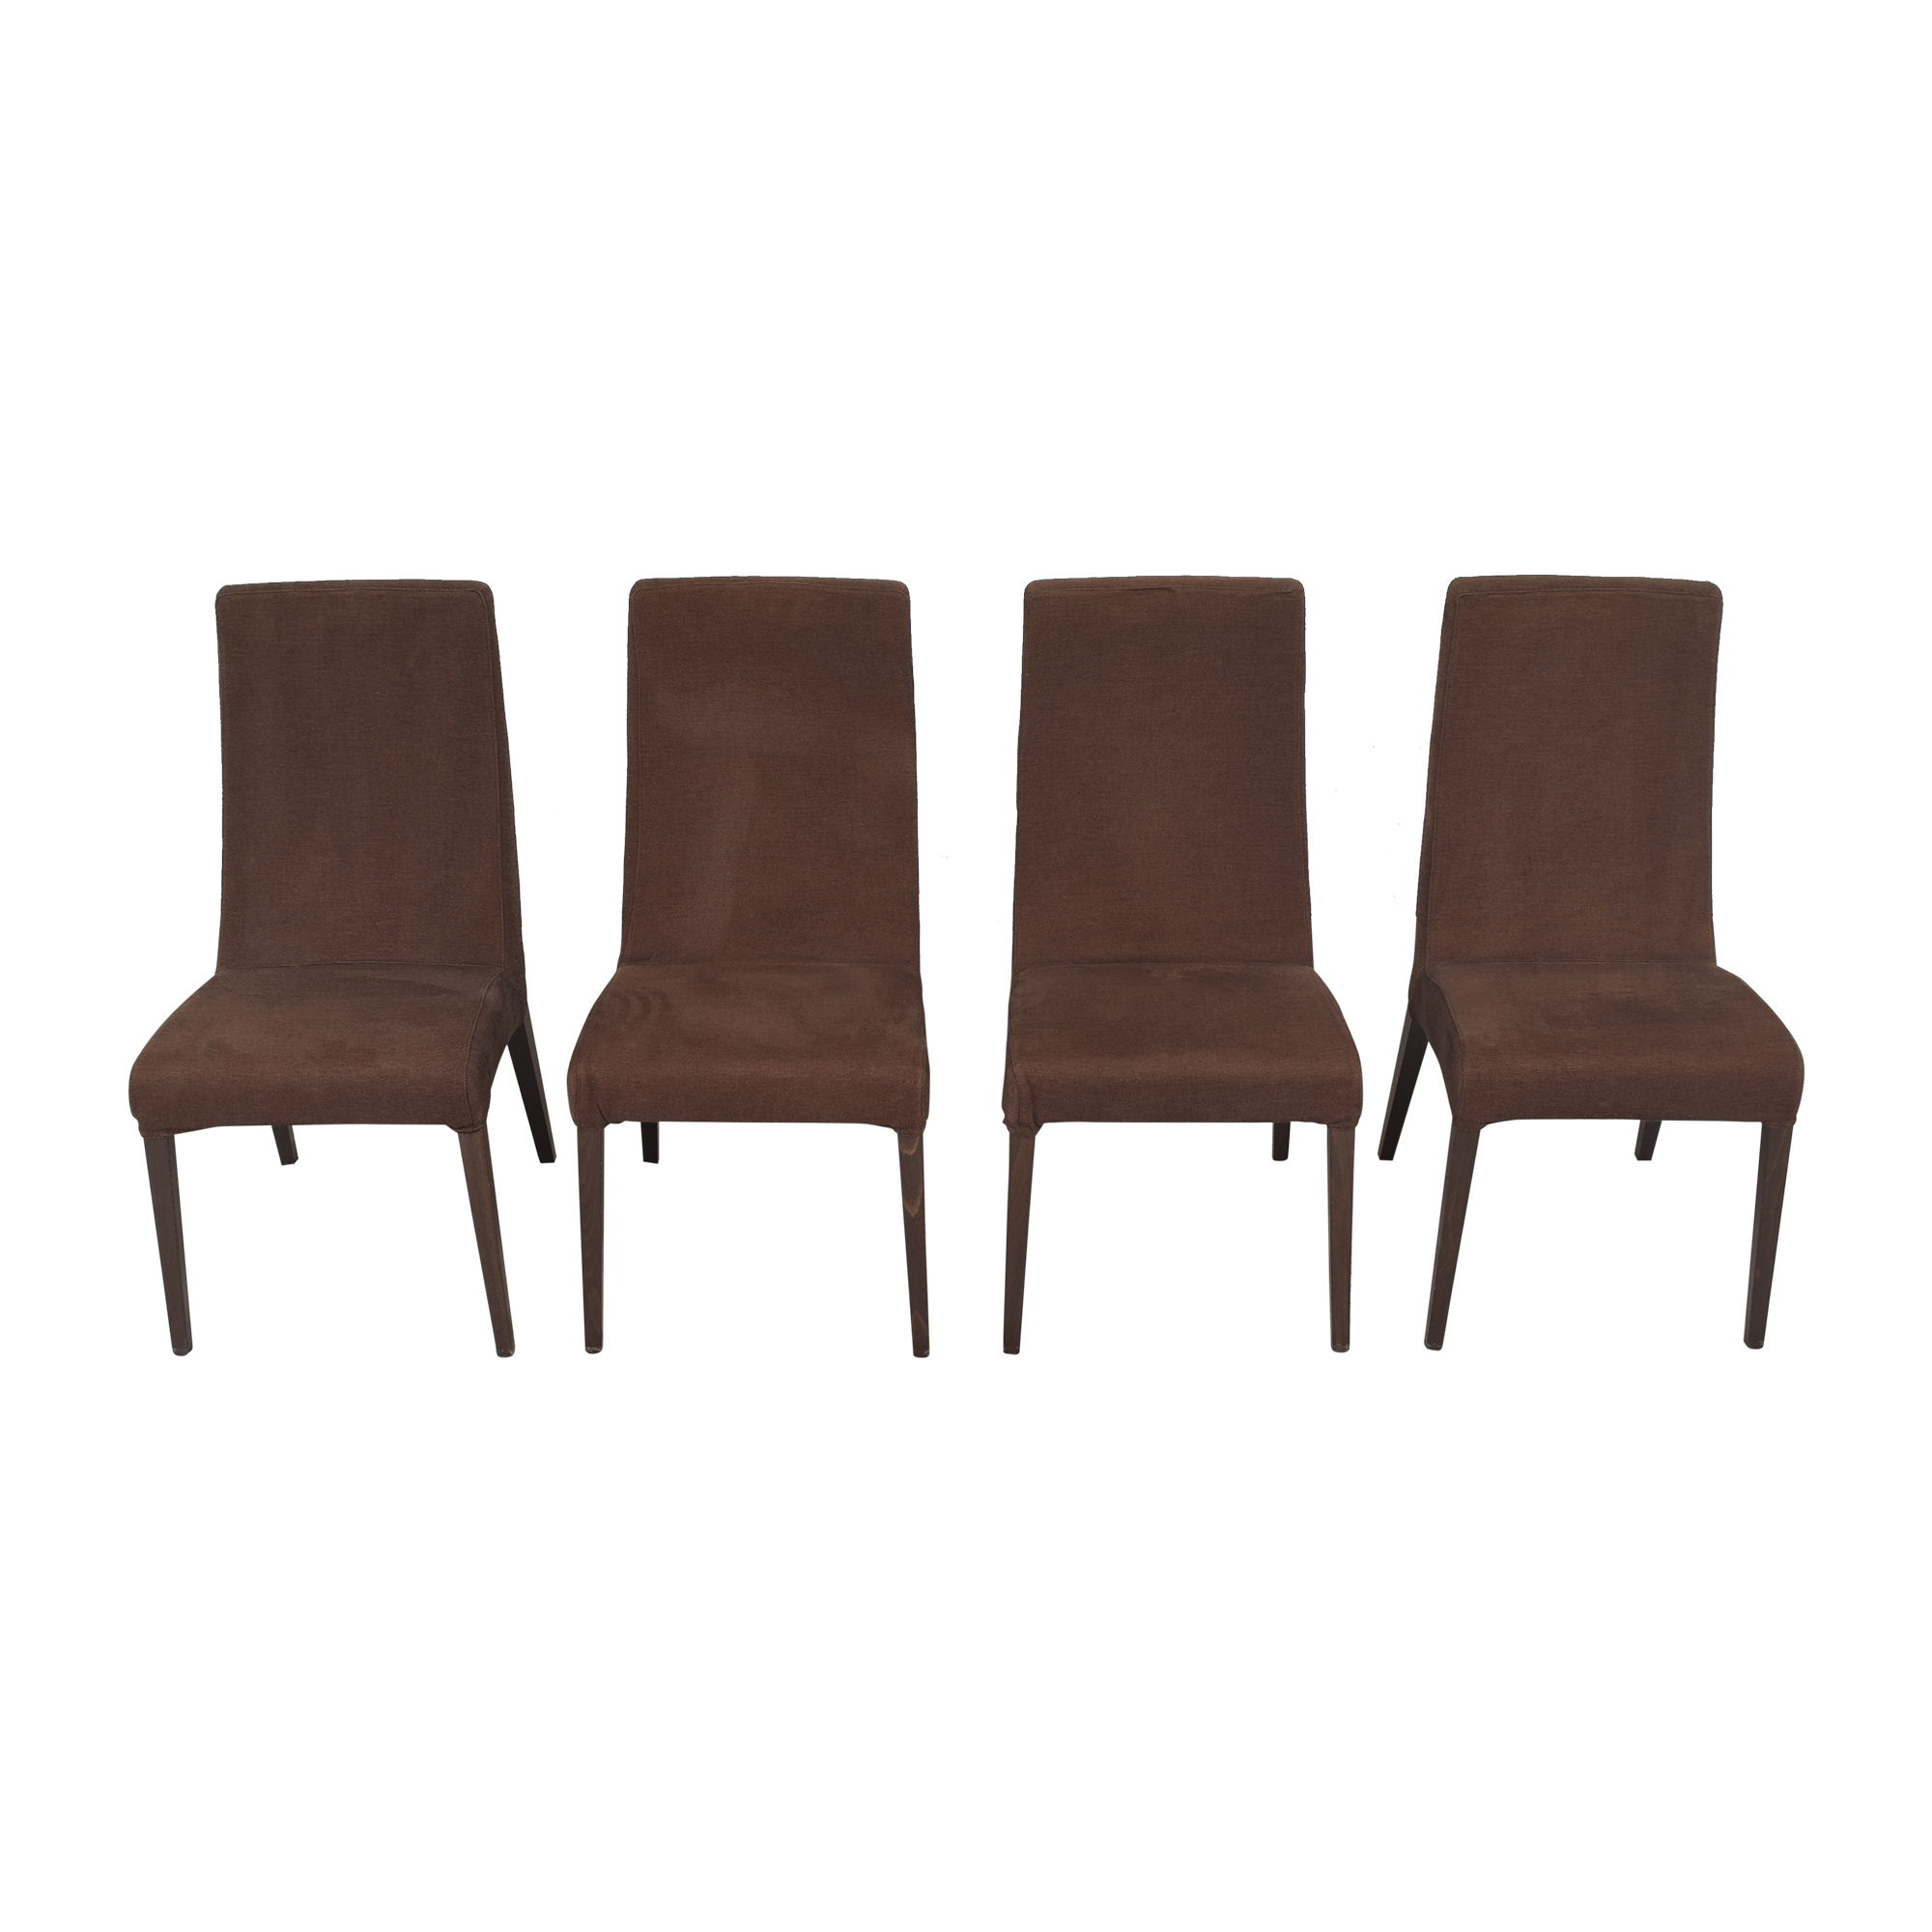 Calligaris Calligaris Upholstered Dining Chairs second hand